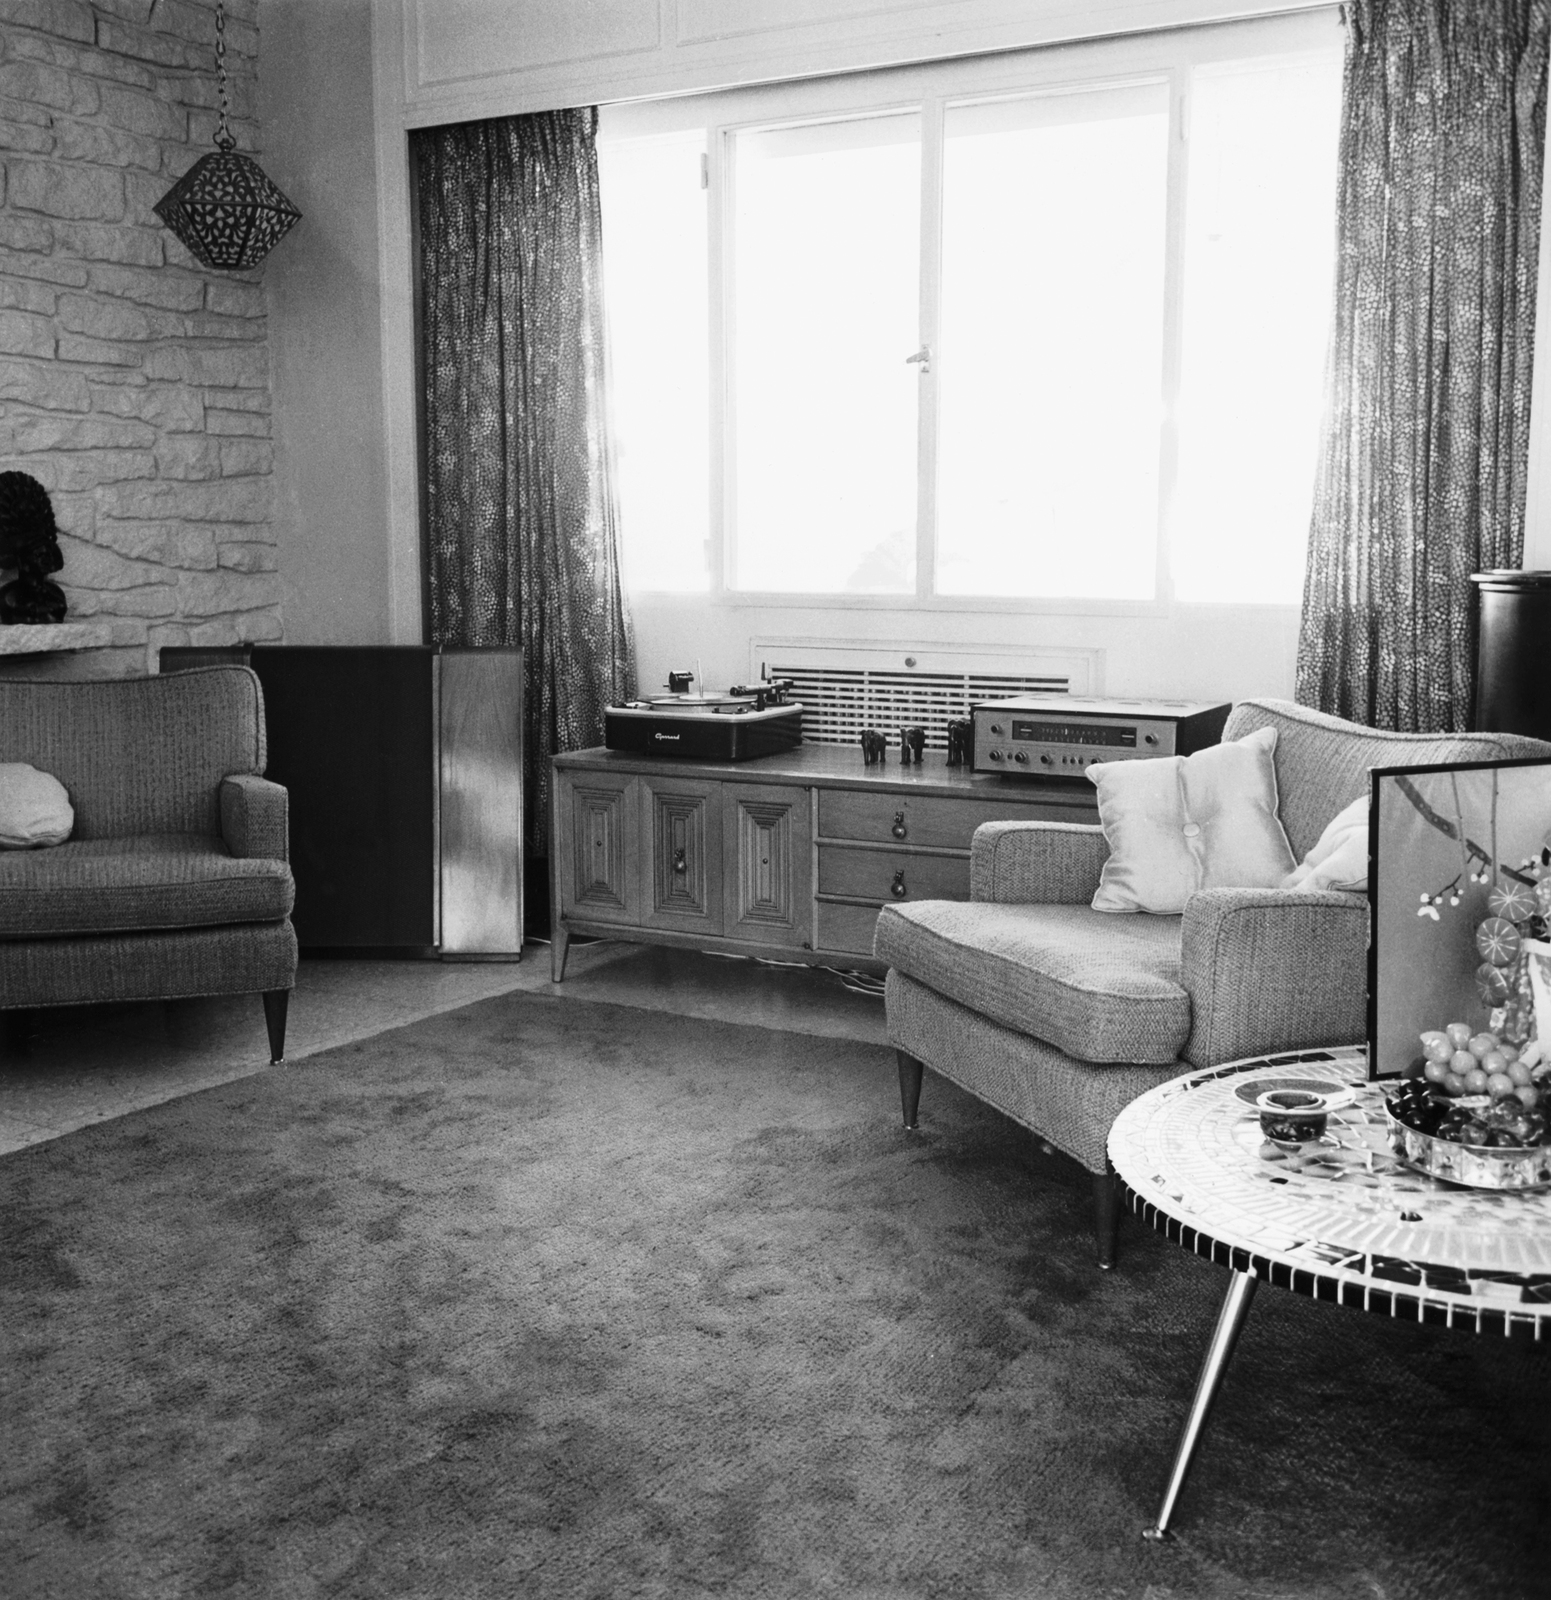 Buenos Aires - Department of Defense Agency Head Residence - 1965